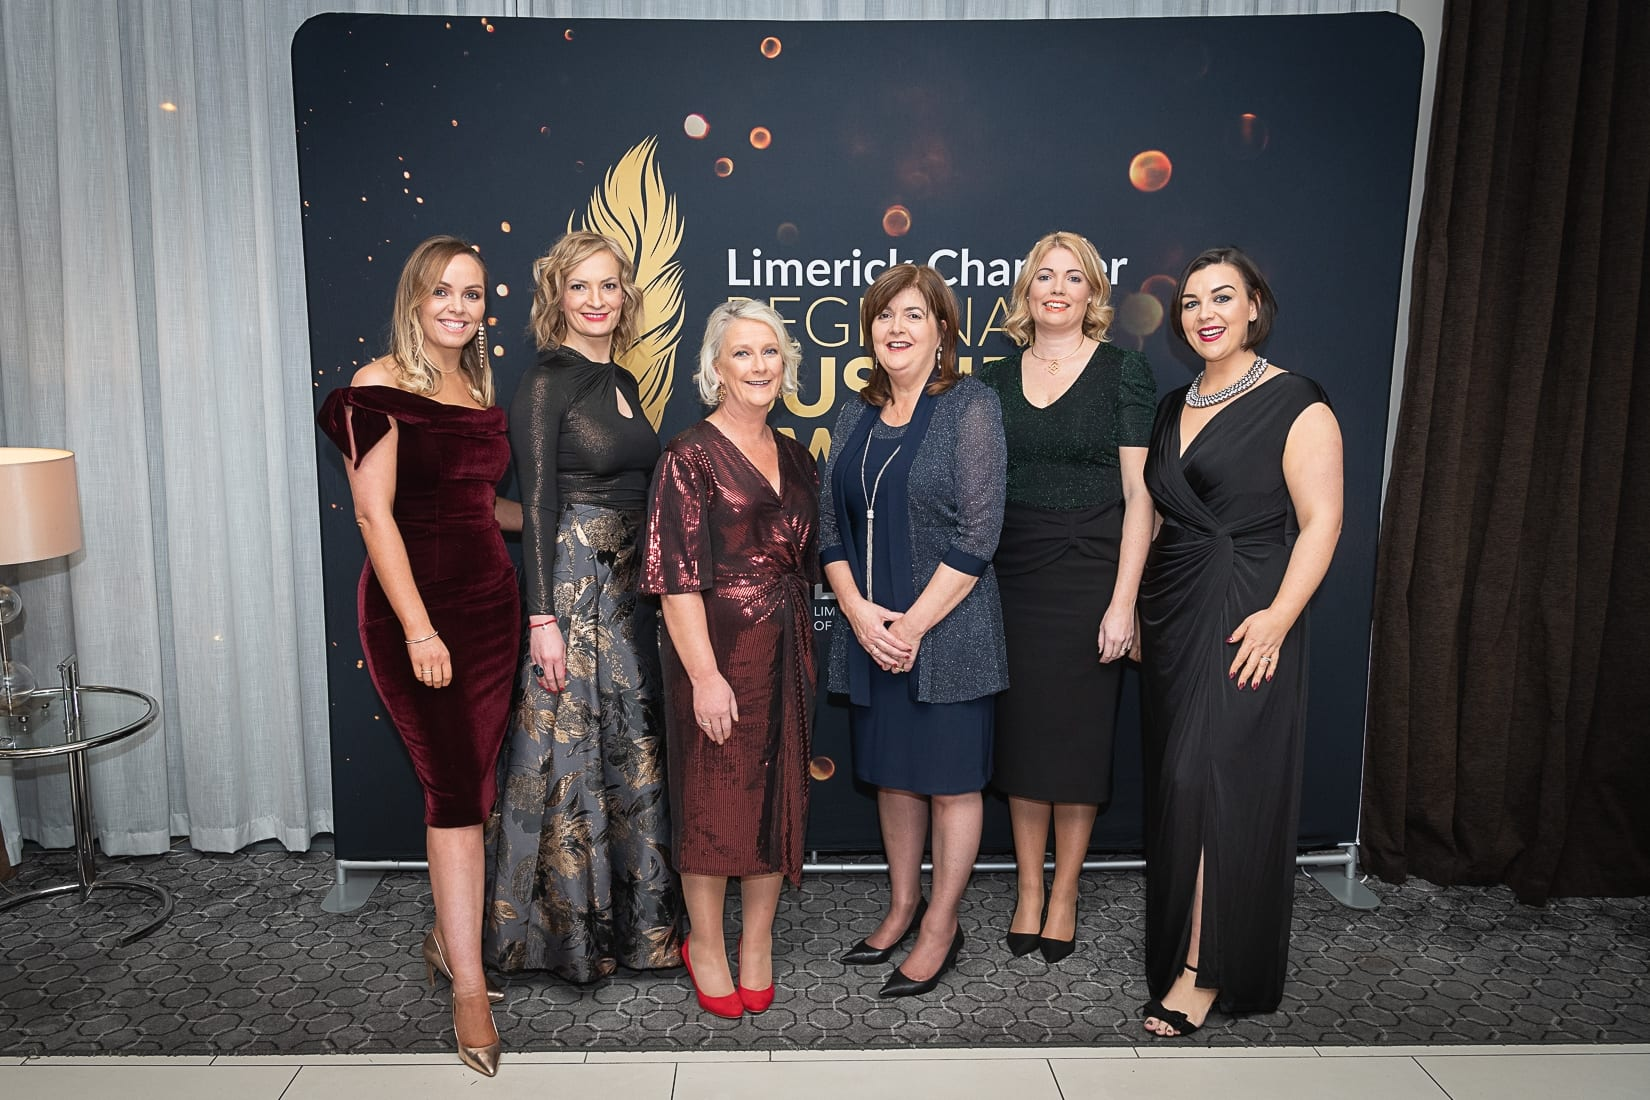 No repro fee-Limerick Chamber President's Dinner and Limerick Chamber Regional Business Awards 2019 which was held in the Strand Hotel on Friday 15th November - From Left to Right: Eimear O'Brien, Pauline Wysocka, Liz Horgan, Olive Noonan, Emer McGrath and Ciara Earlie all from BOI  Photo credit Shauna Kennedy